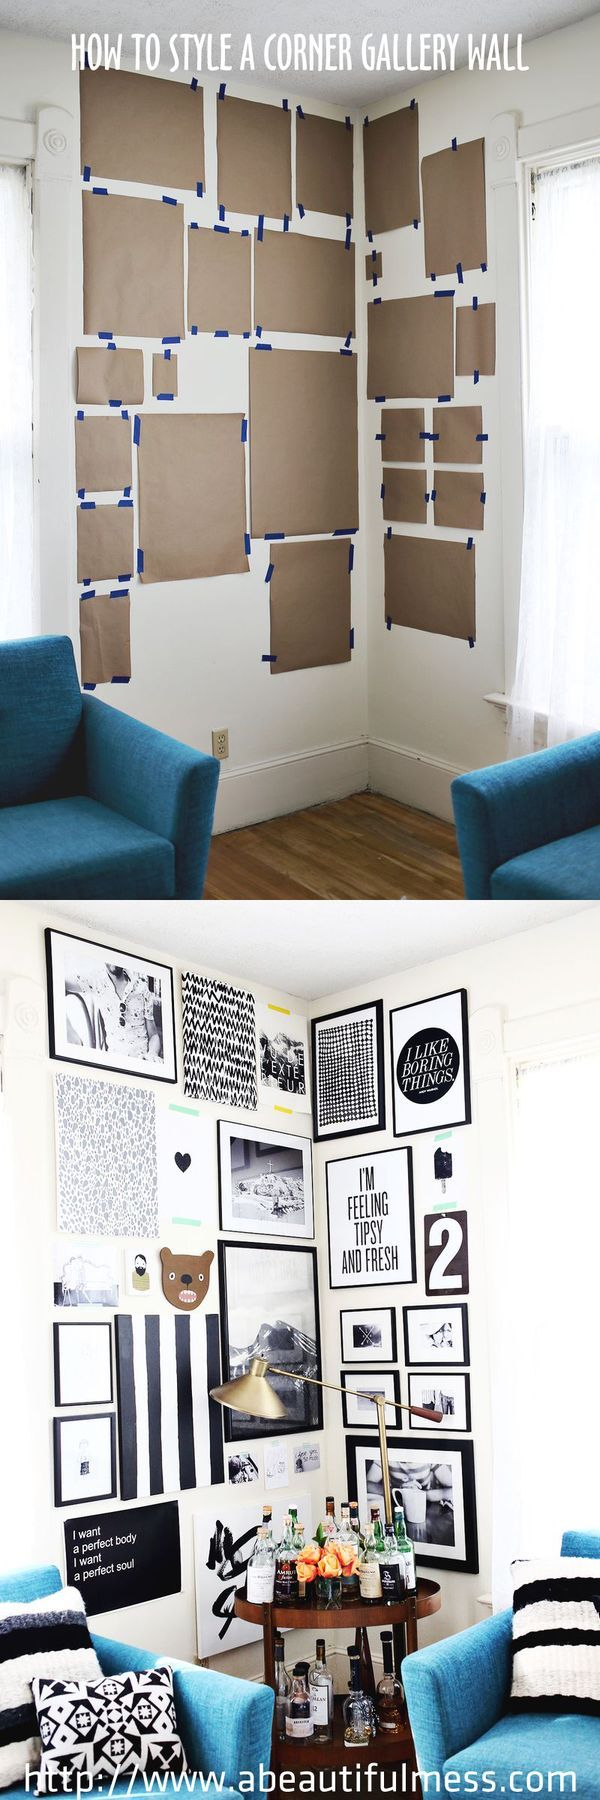 Might also work to plan a grouping hanging from picture rail